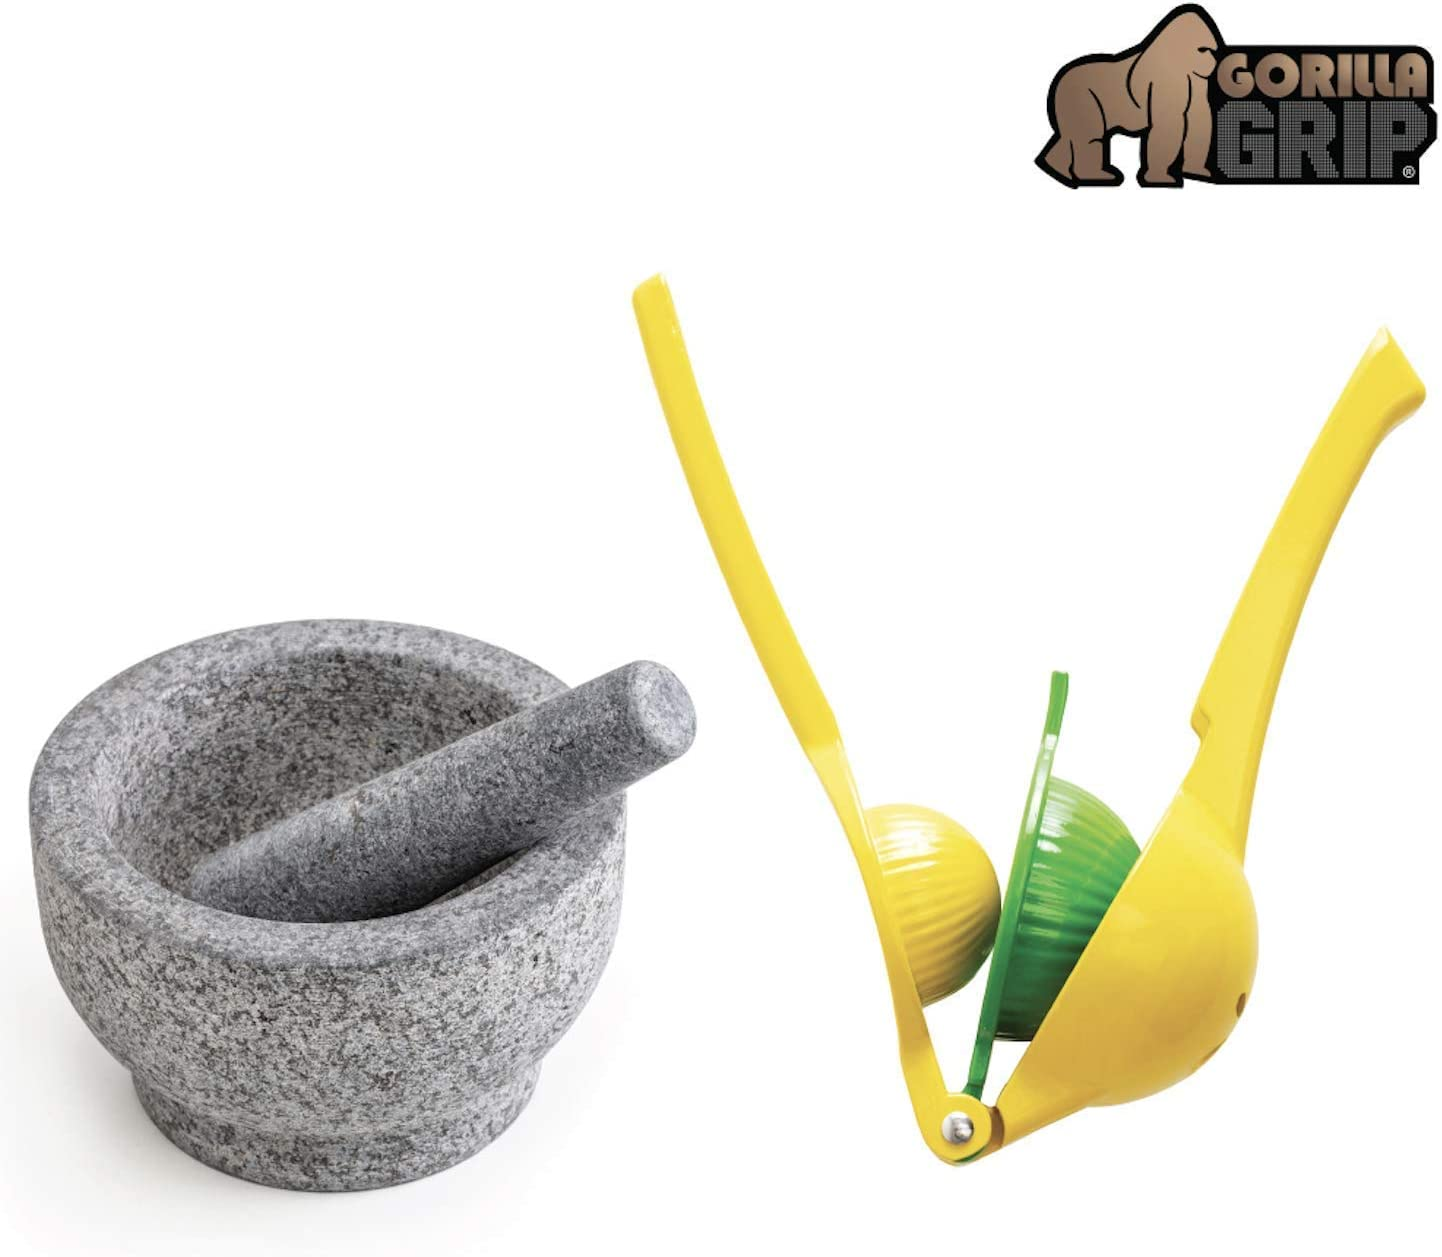 Gorilla Grip Mortar and Pestle Set and Citrus Squeezer, Granite Mortar and Pestle Holds 1.5 Cups, Manual Hand Juicer Good for Limes, Lemons, and Fruit, 2 Item Bundle